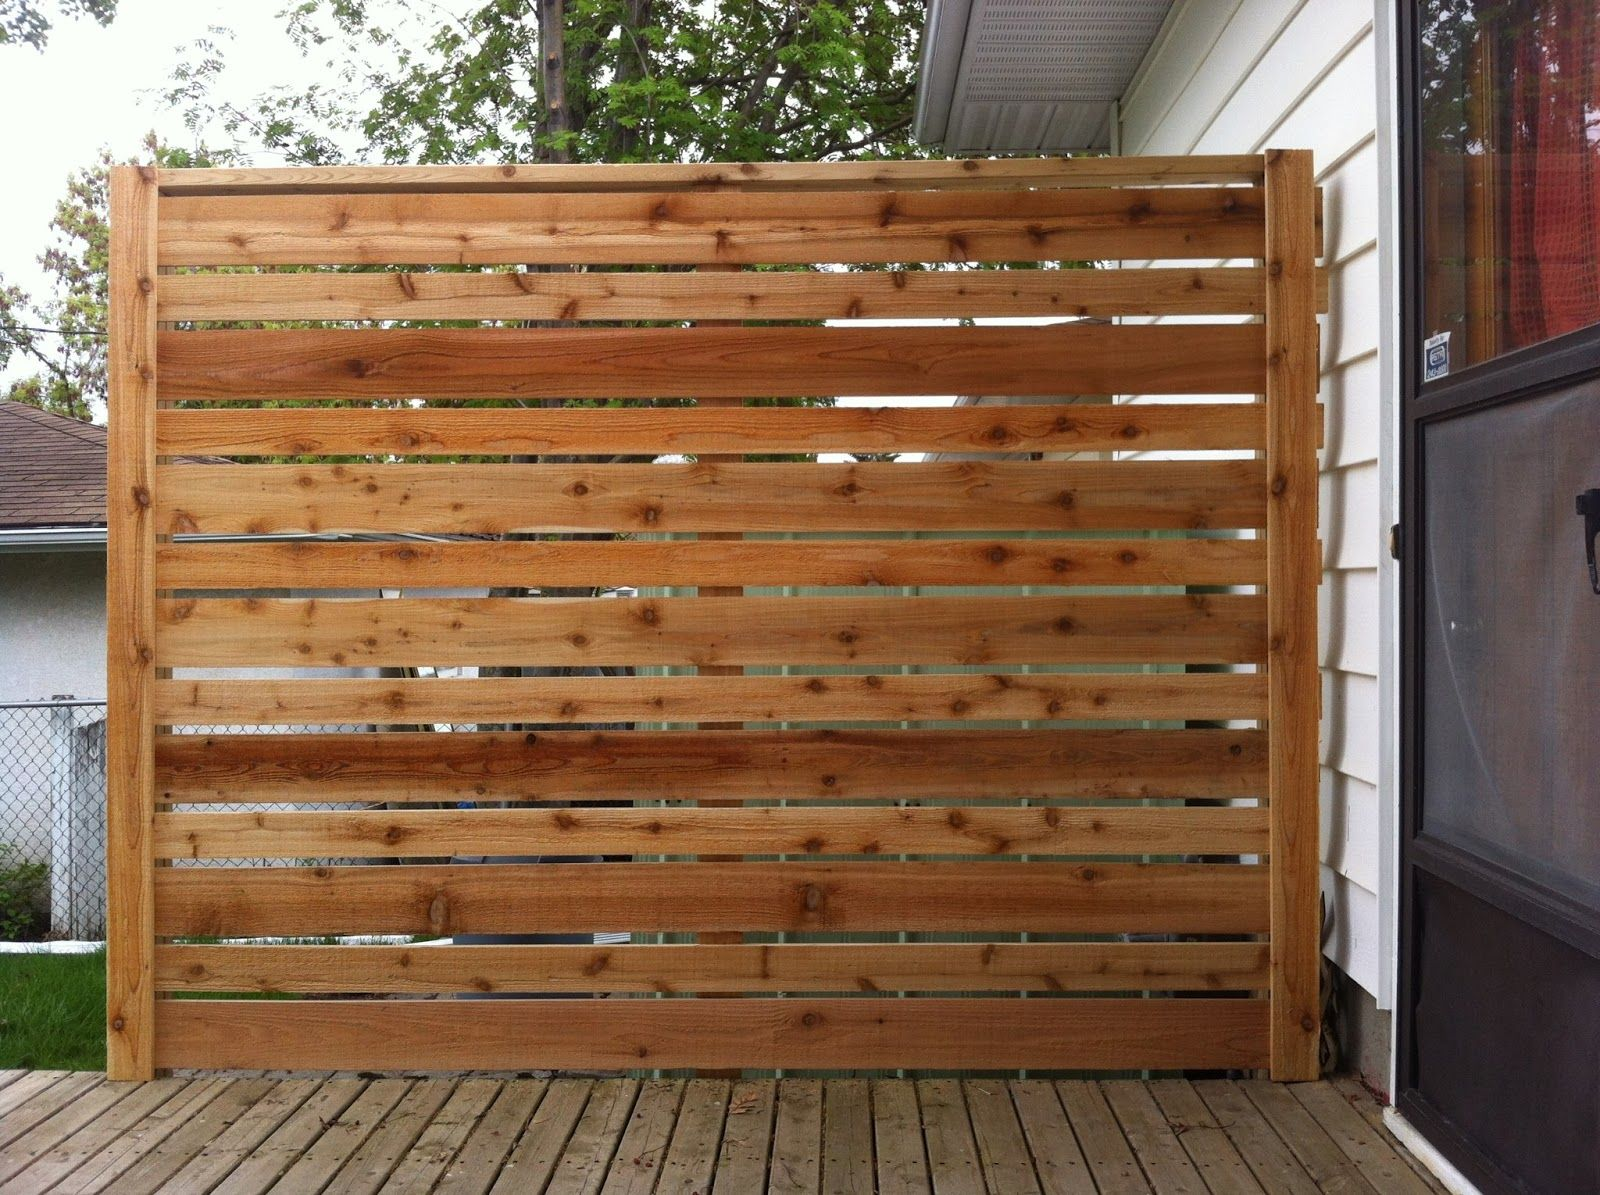 Inviting Style Of Wooden Modern Privacy Screen As Exterior House Decoration Ideas To Separ Privacy Screen Outdoor Backyard Privacy Screen Garden Privacy Screen